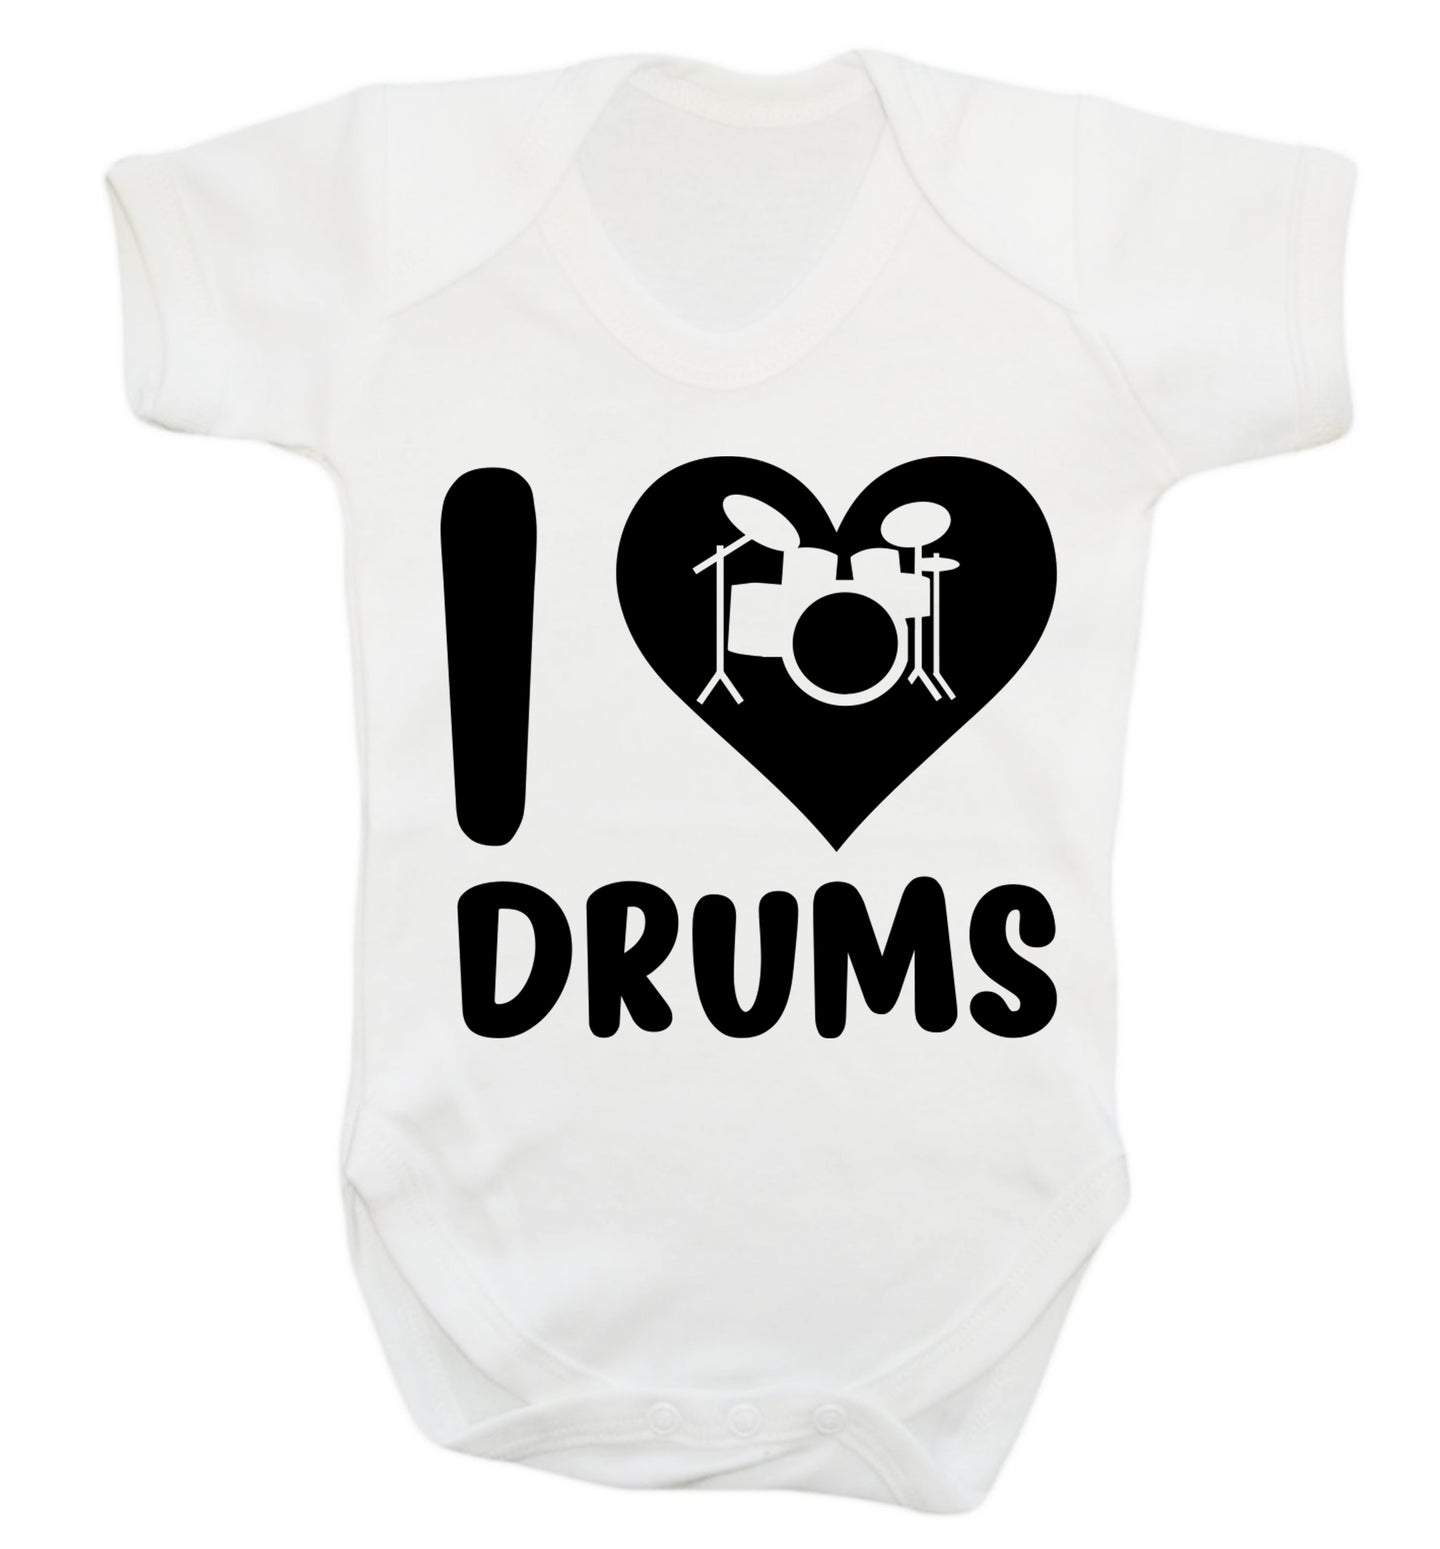 I love drums Baby Vest white 18-24 months